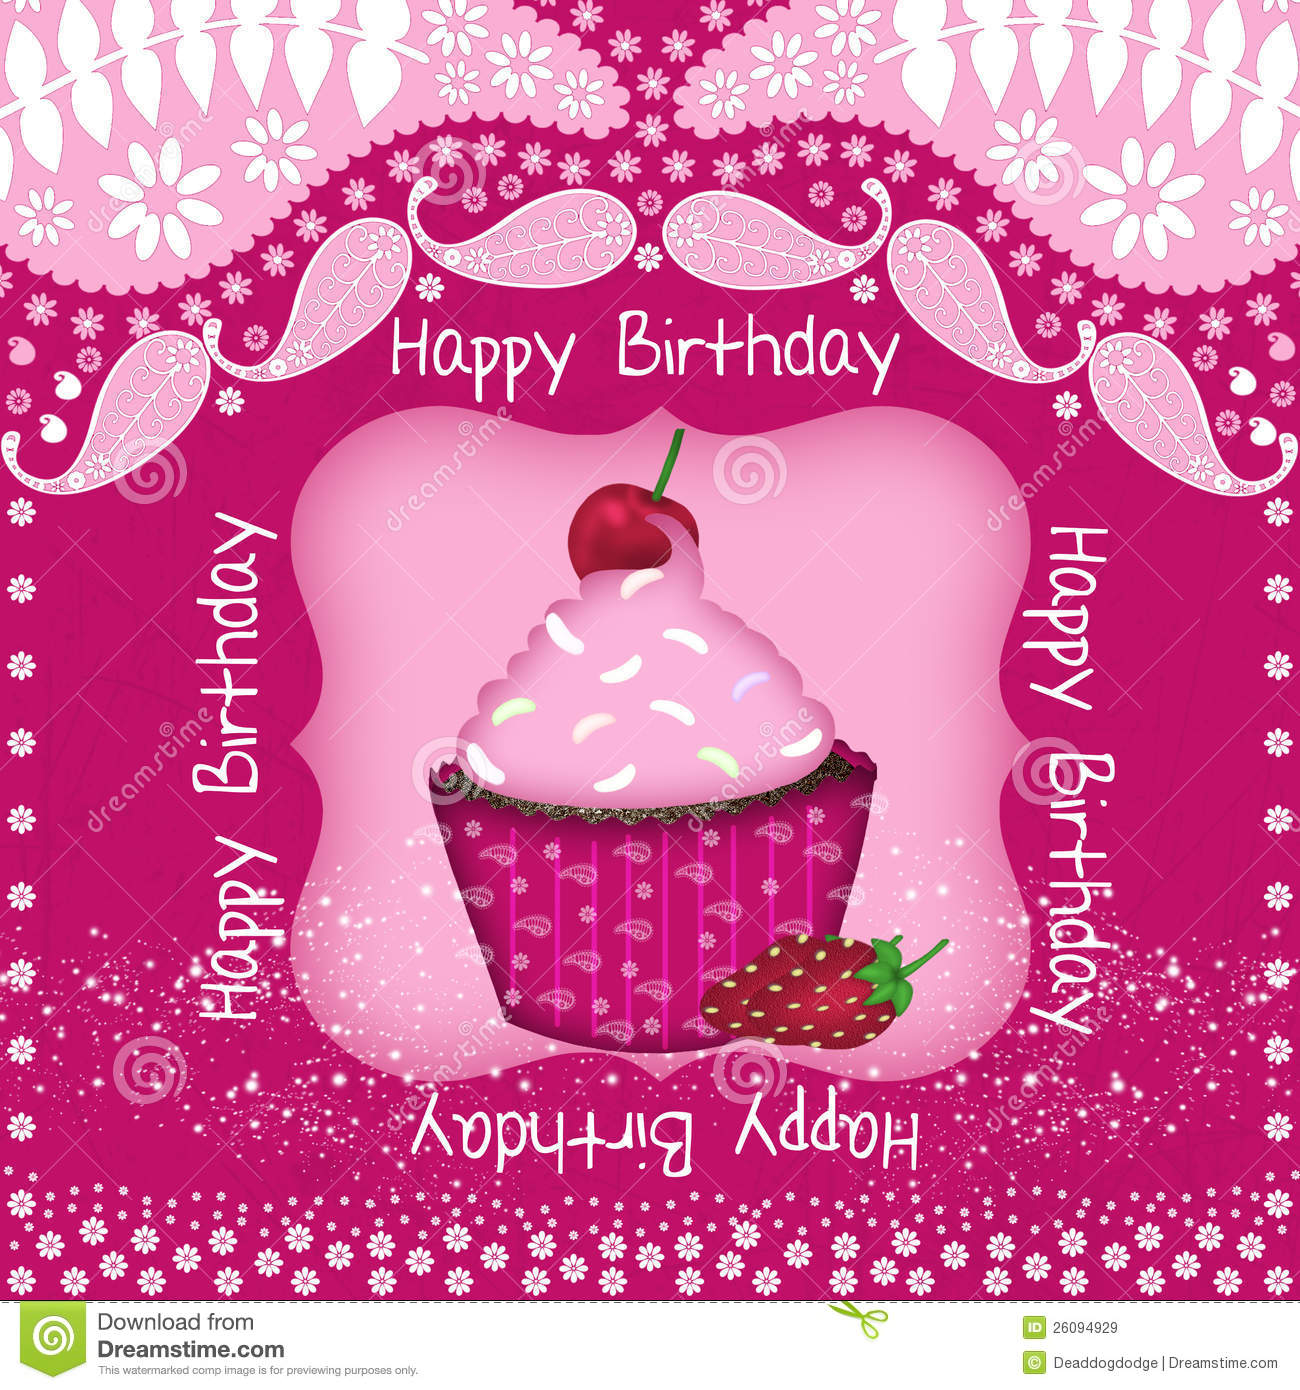 cupcake birthday card royalty free stock images  image, Birthday card